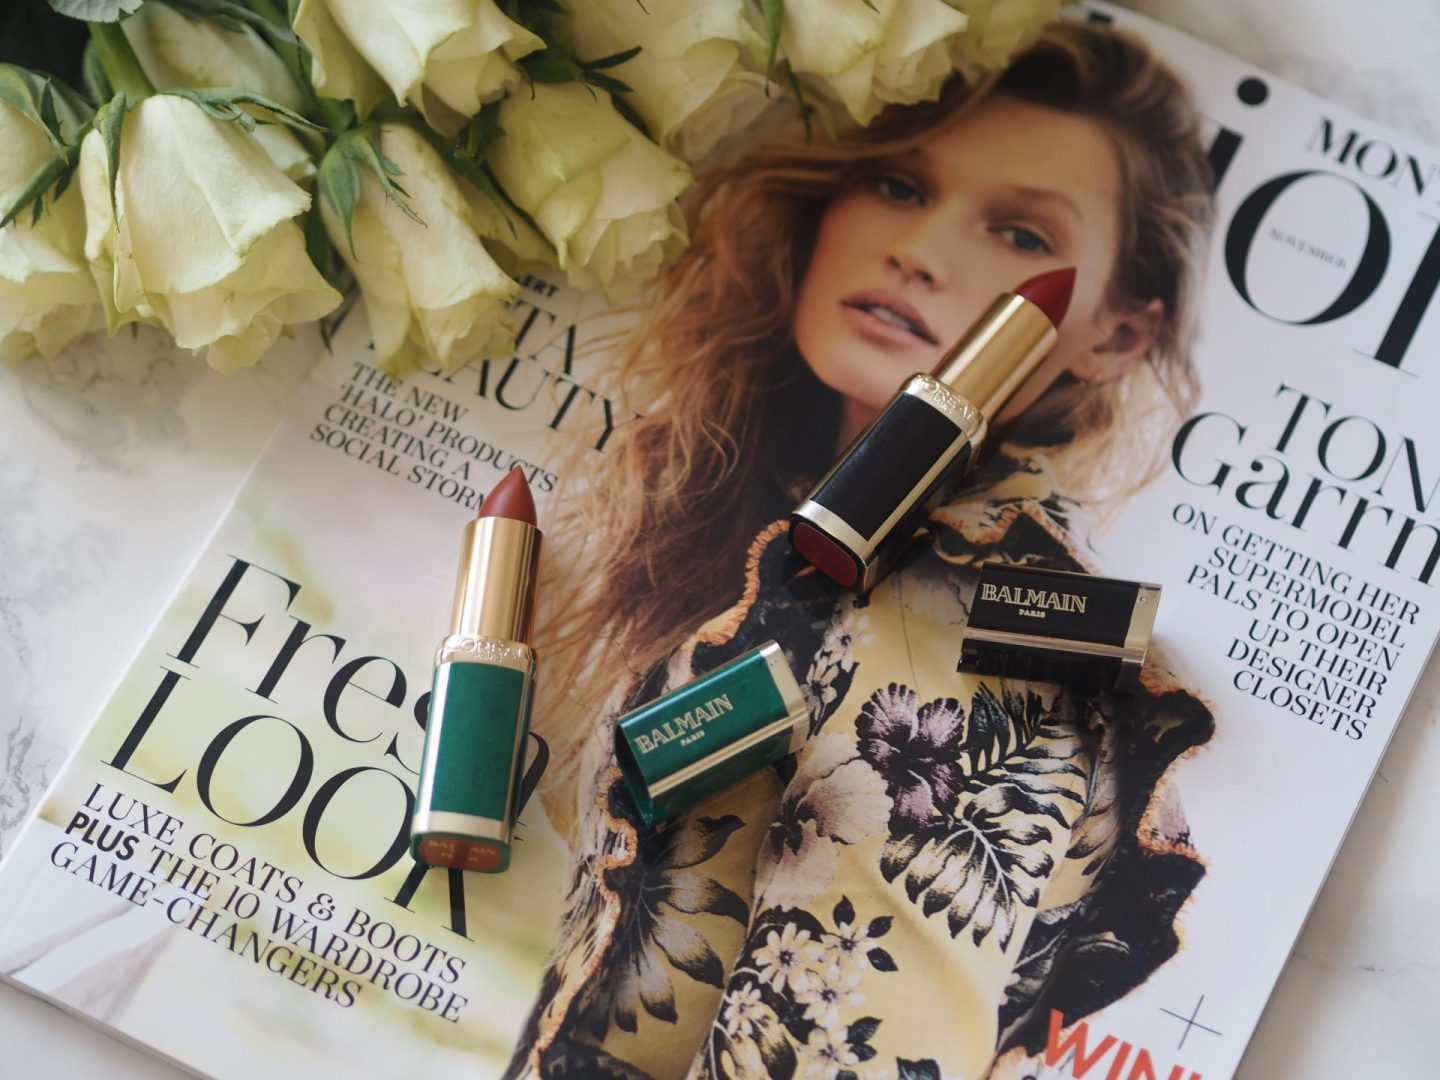 Winter Skincare - Product: L'Oreal x Balmain Lipsticks – Domination and Fever